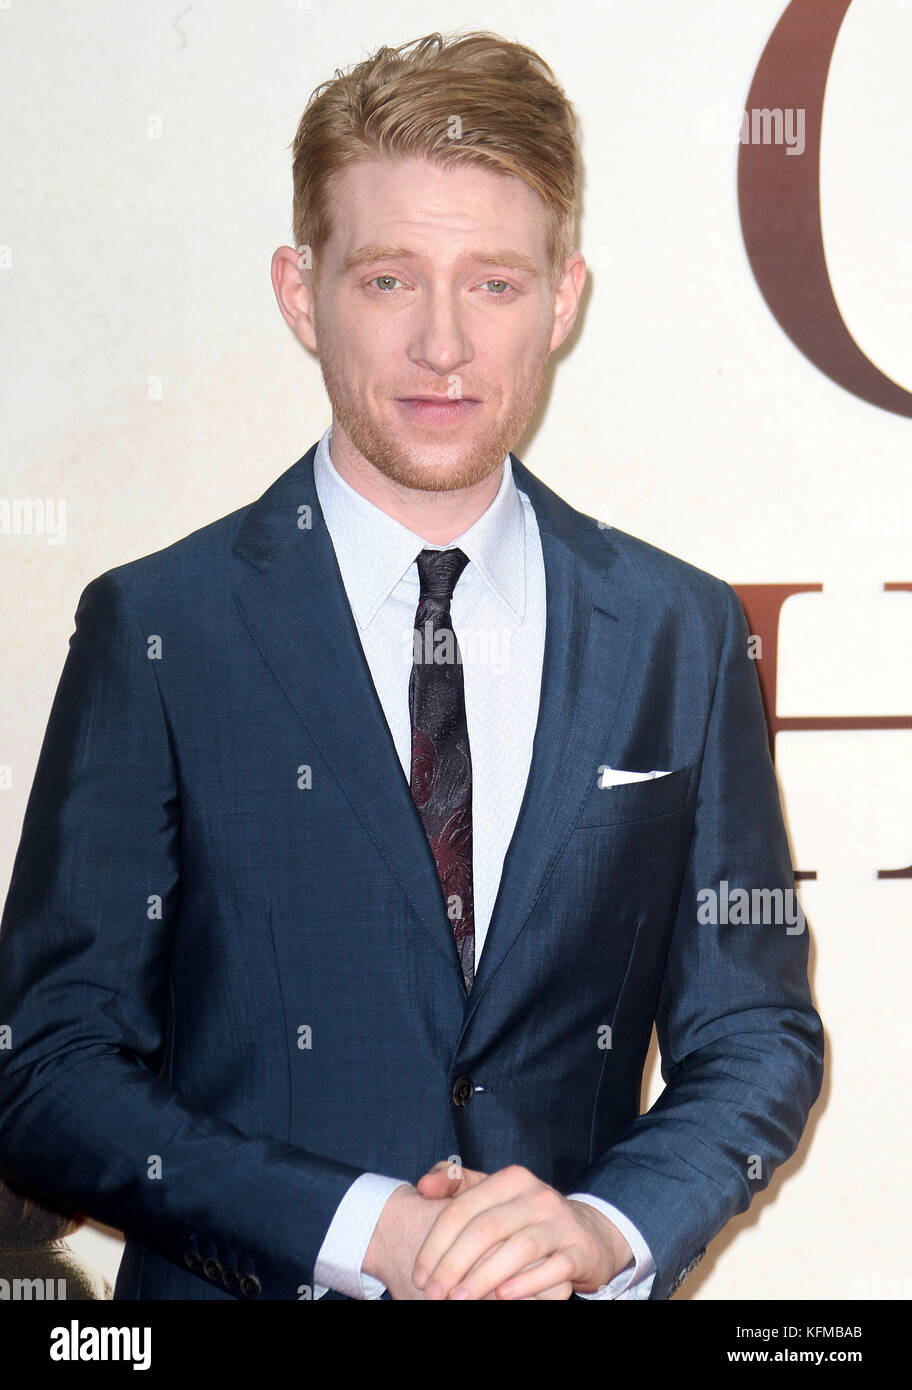 Sep 20, 2017 - Domhnall Gleeson attending 'Goodbye Christopher Robin' World Premiere, Leicester Square in - Stock Image